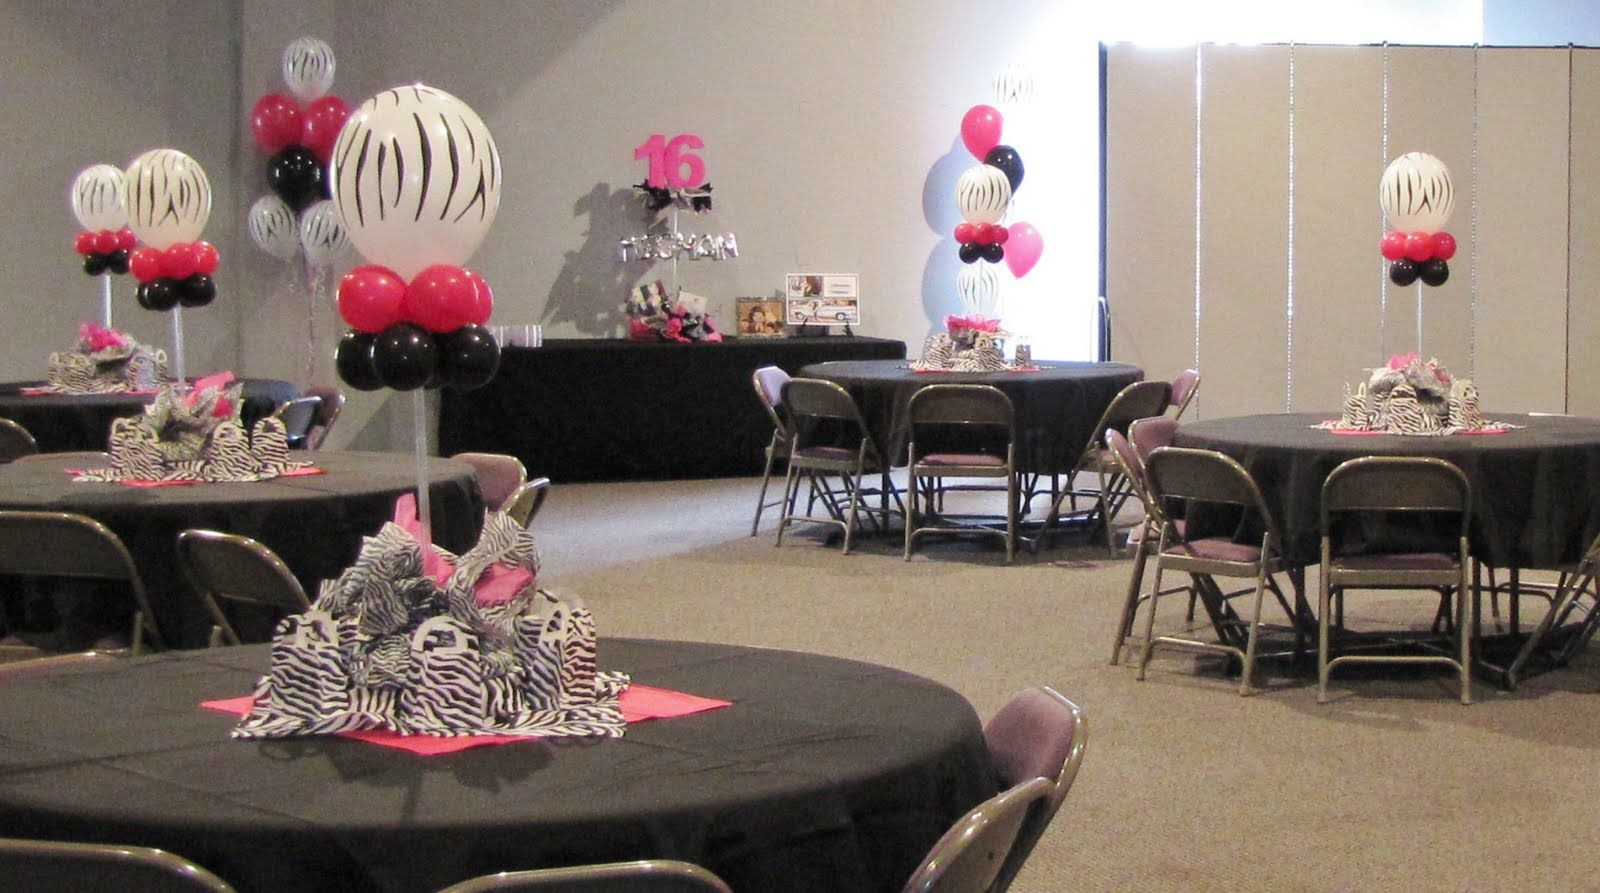 inexpensive church table decorations party people celebration